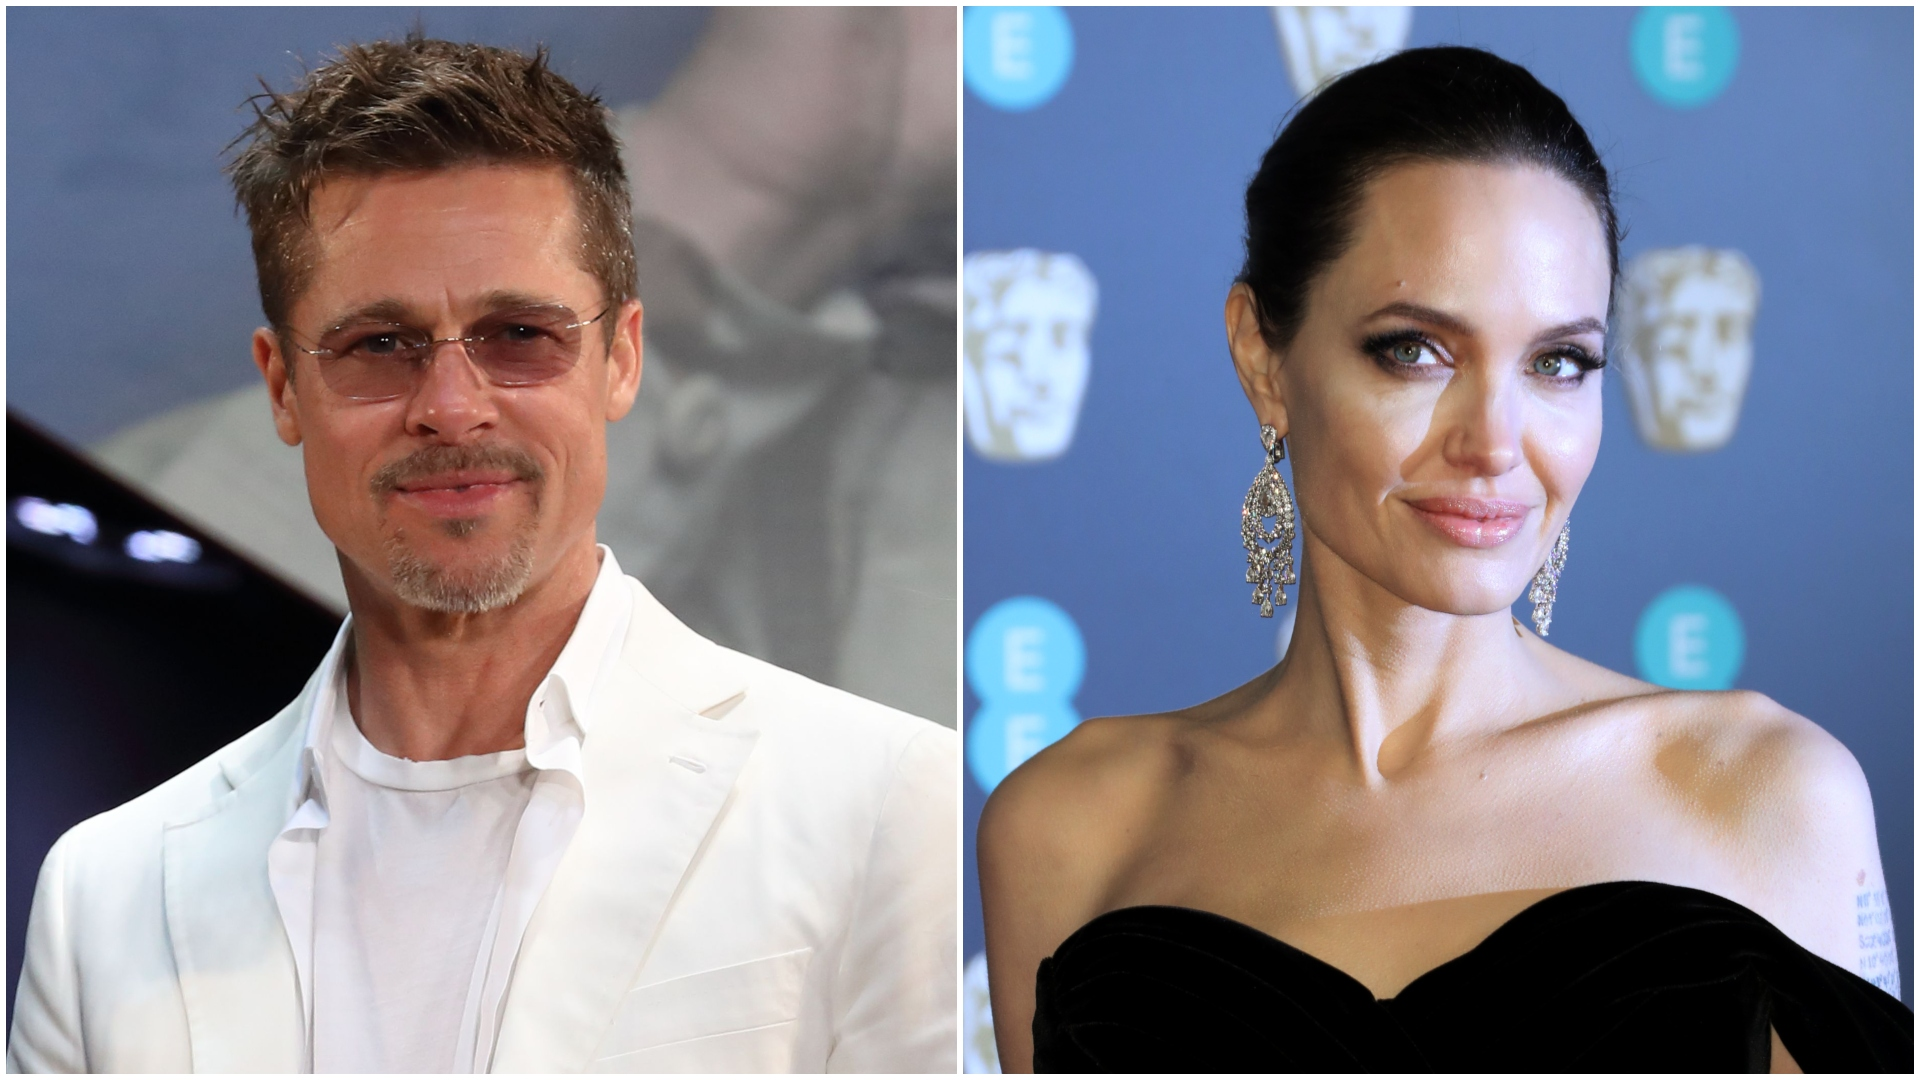 Angelina Jolie Video Hard brad pitt & angelina jolie move past problems to co-parent